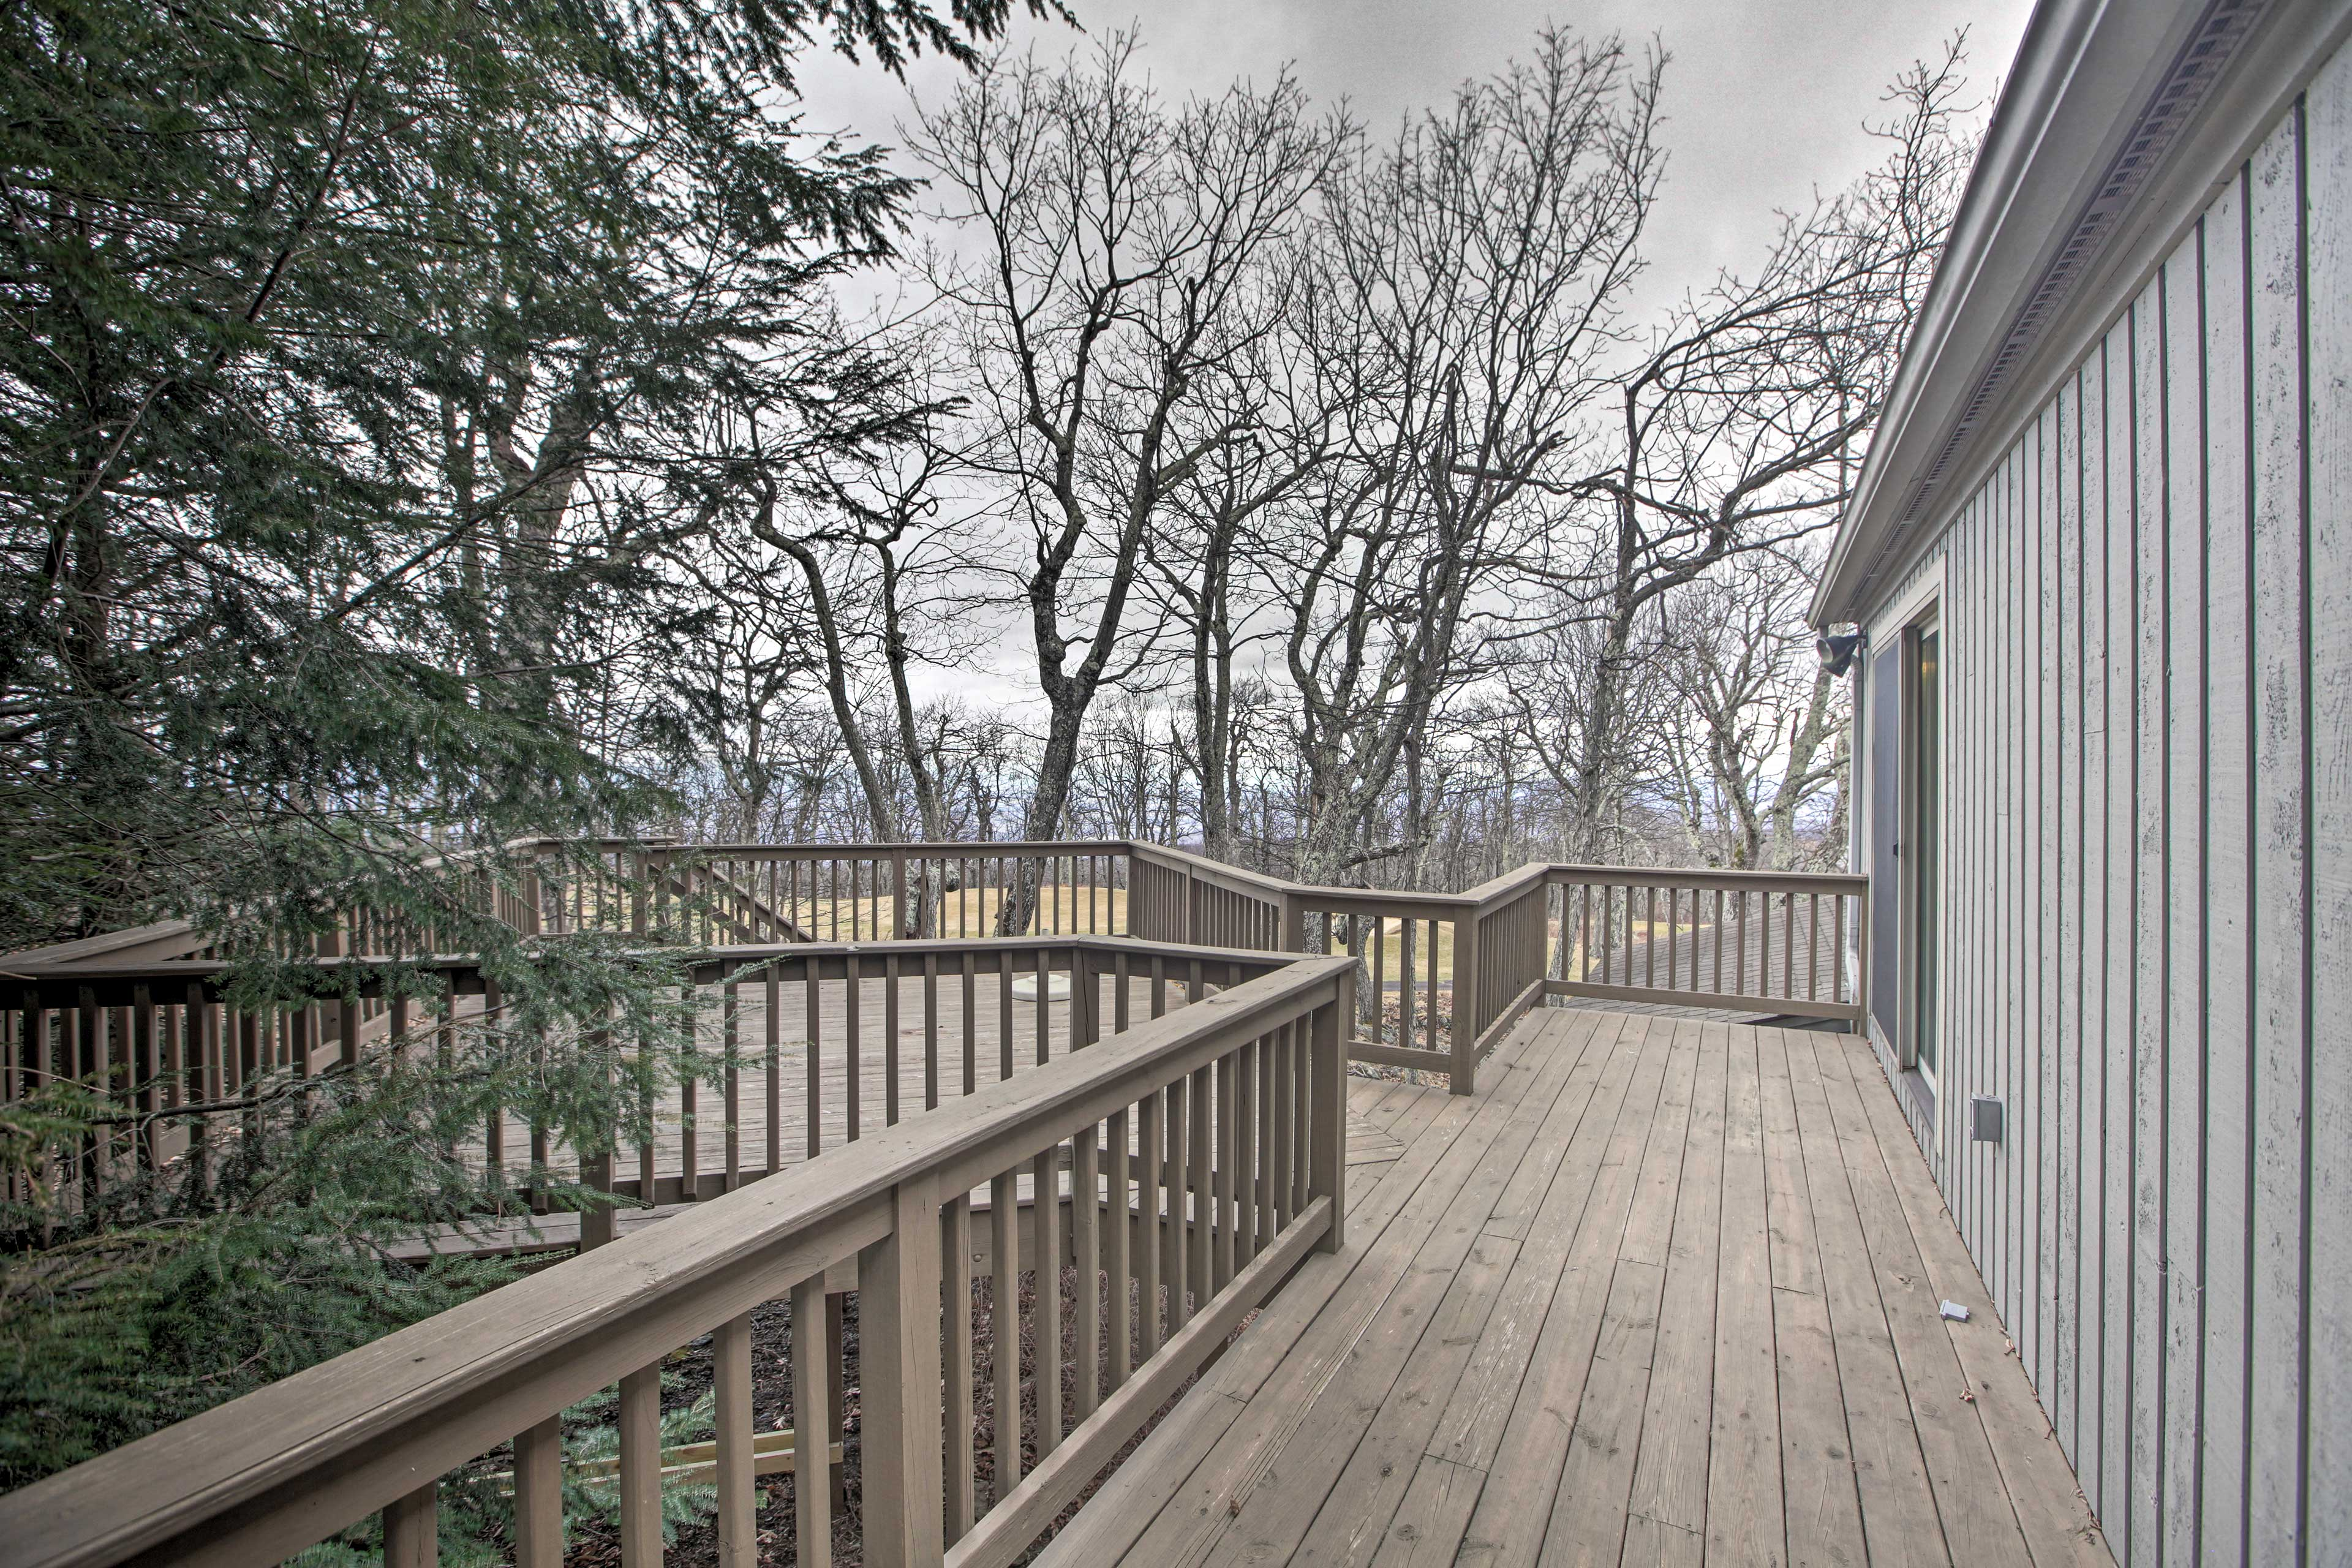 The deck offers great views of the mountains and the surrounding area!